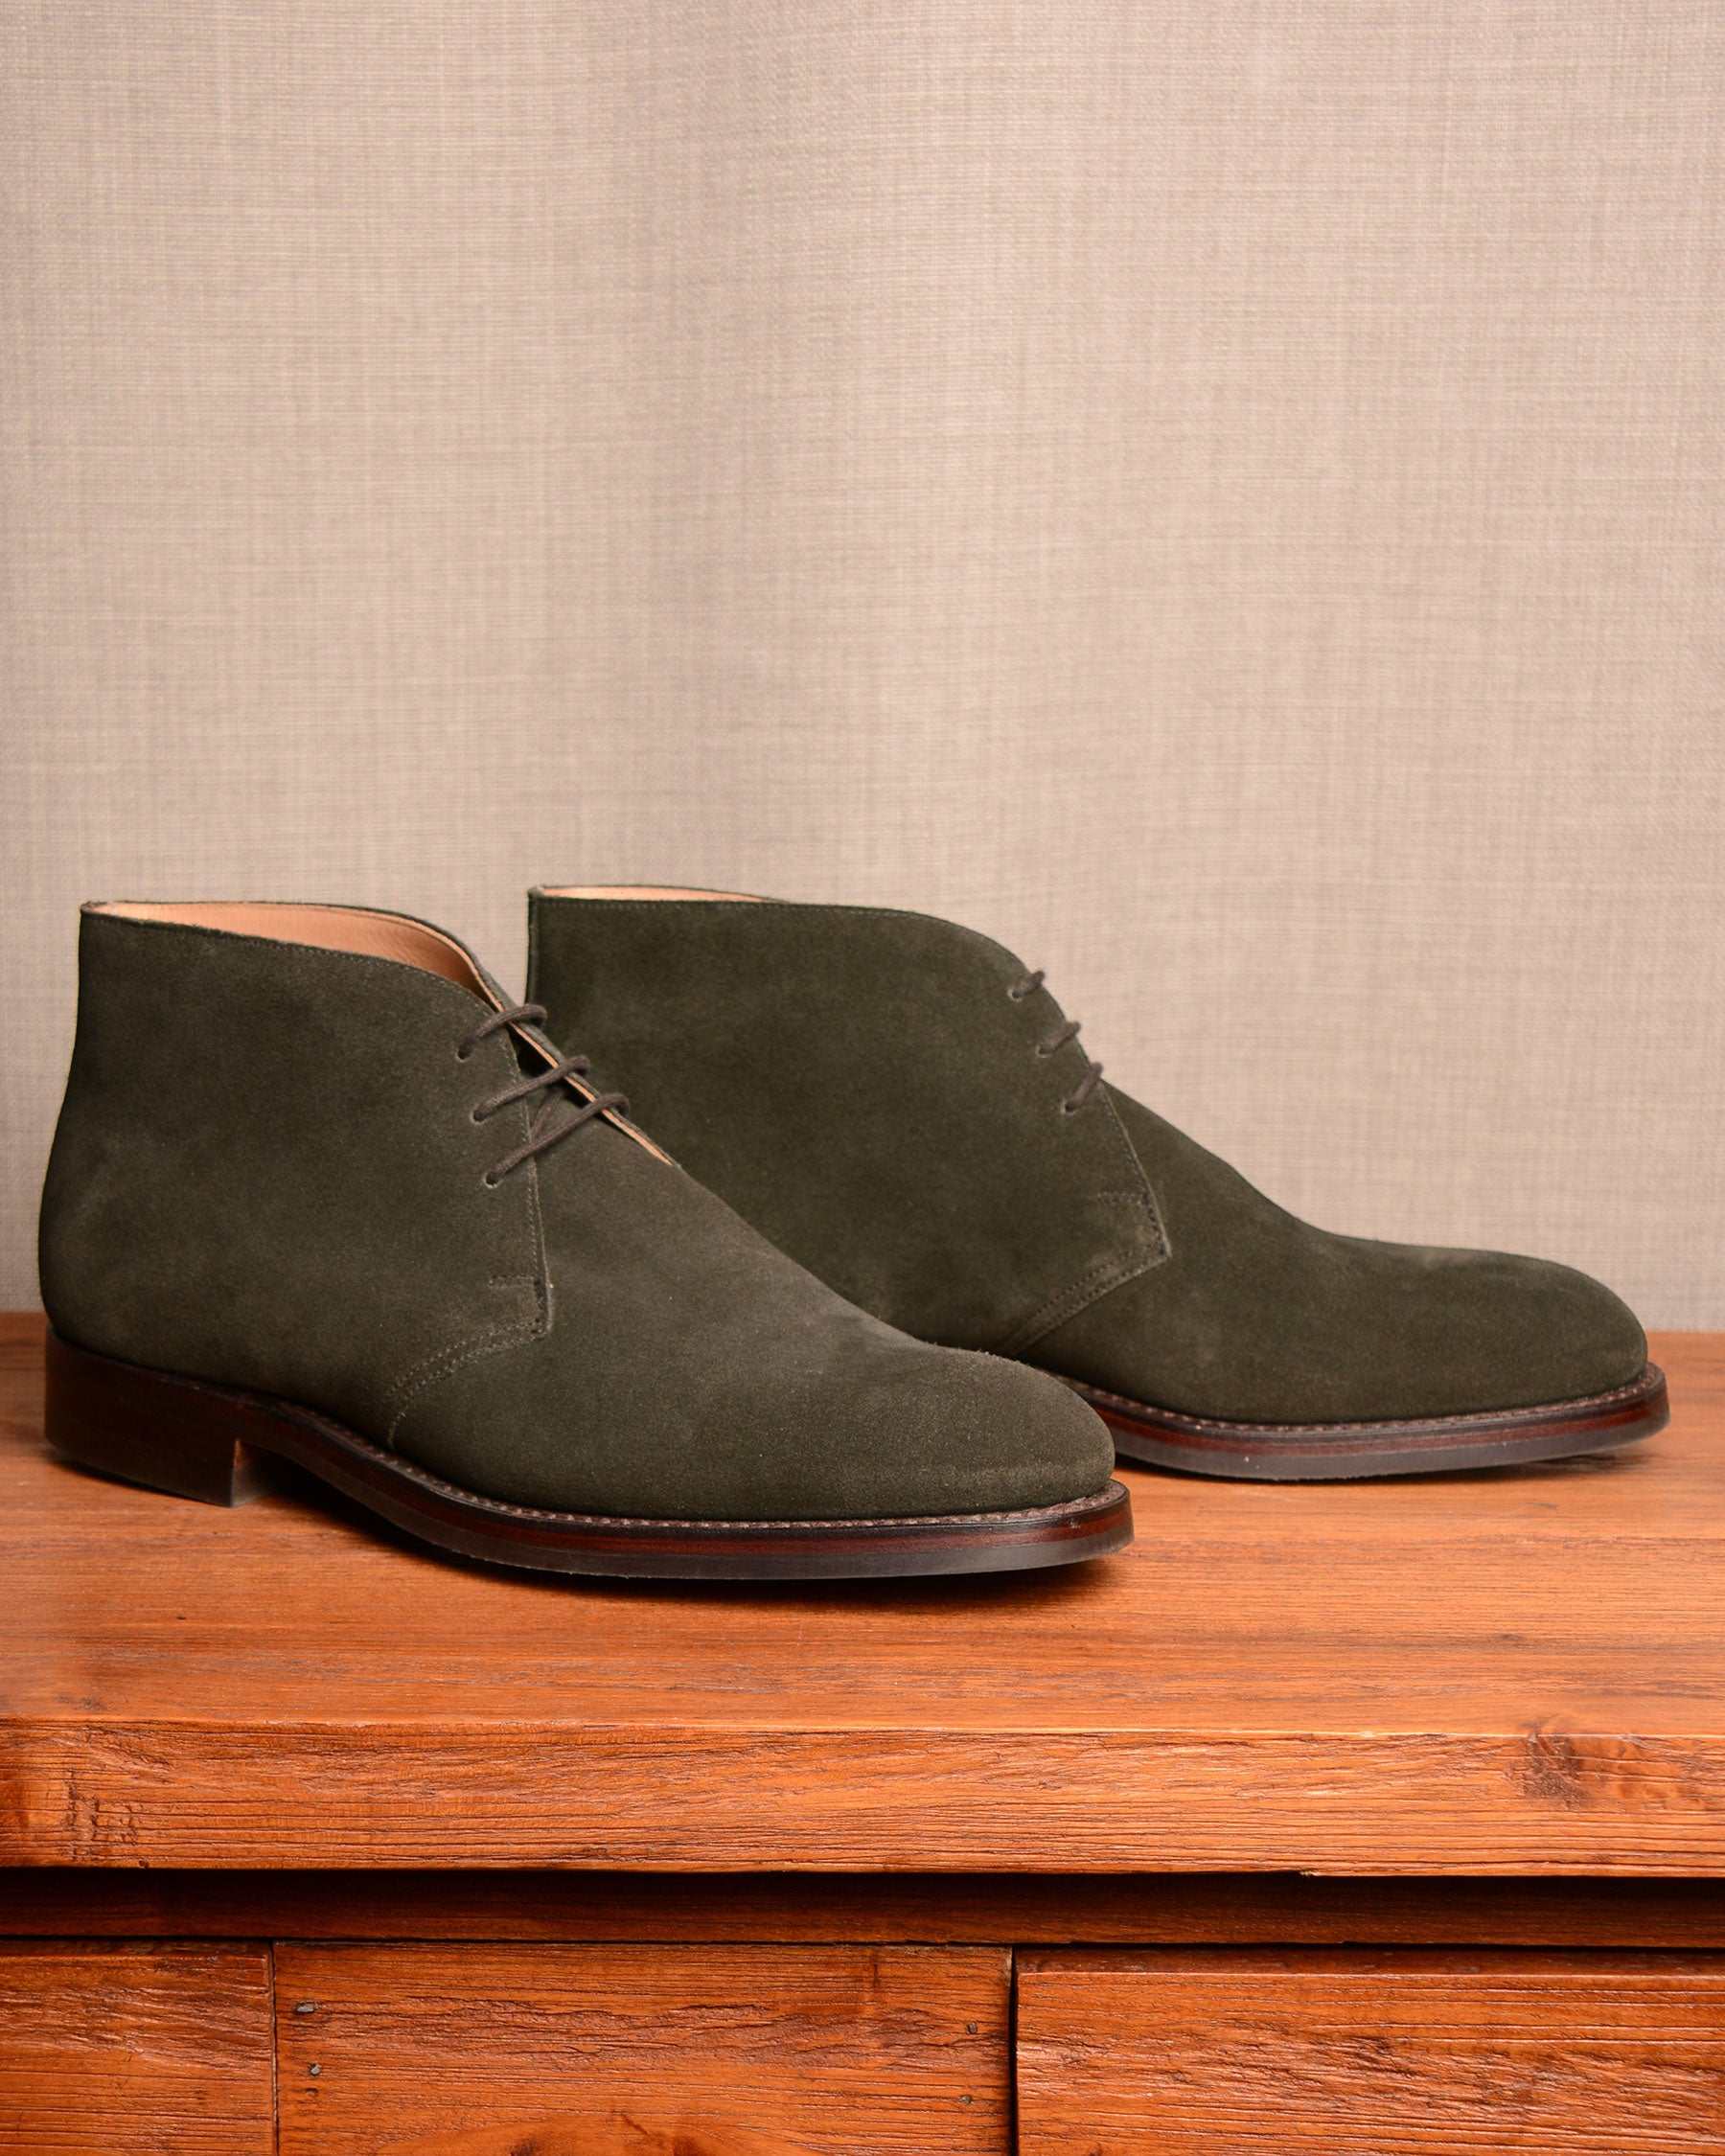 Crockett & Jones Chiltern - Earth Green Suede